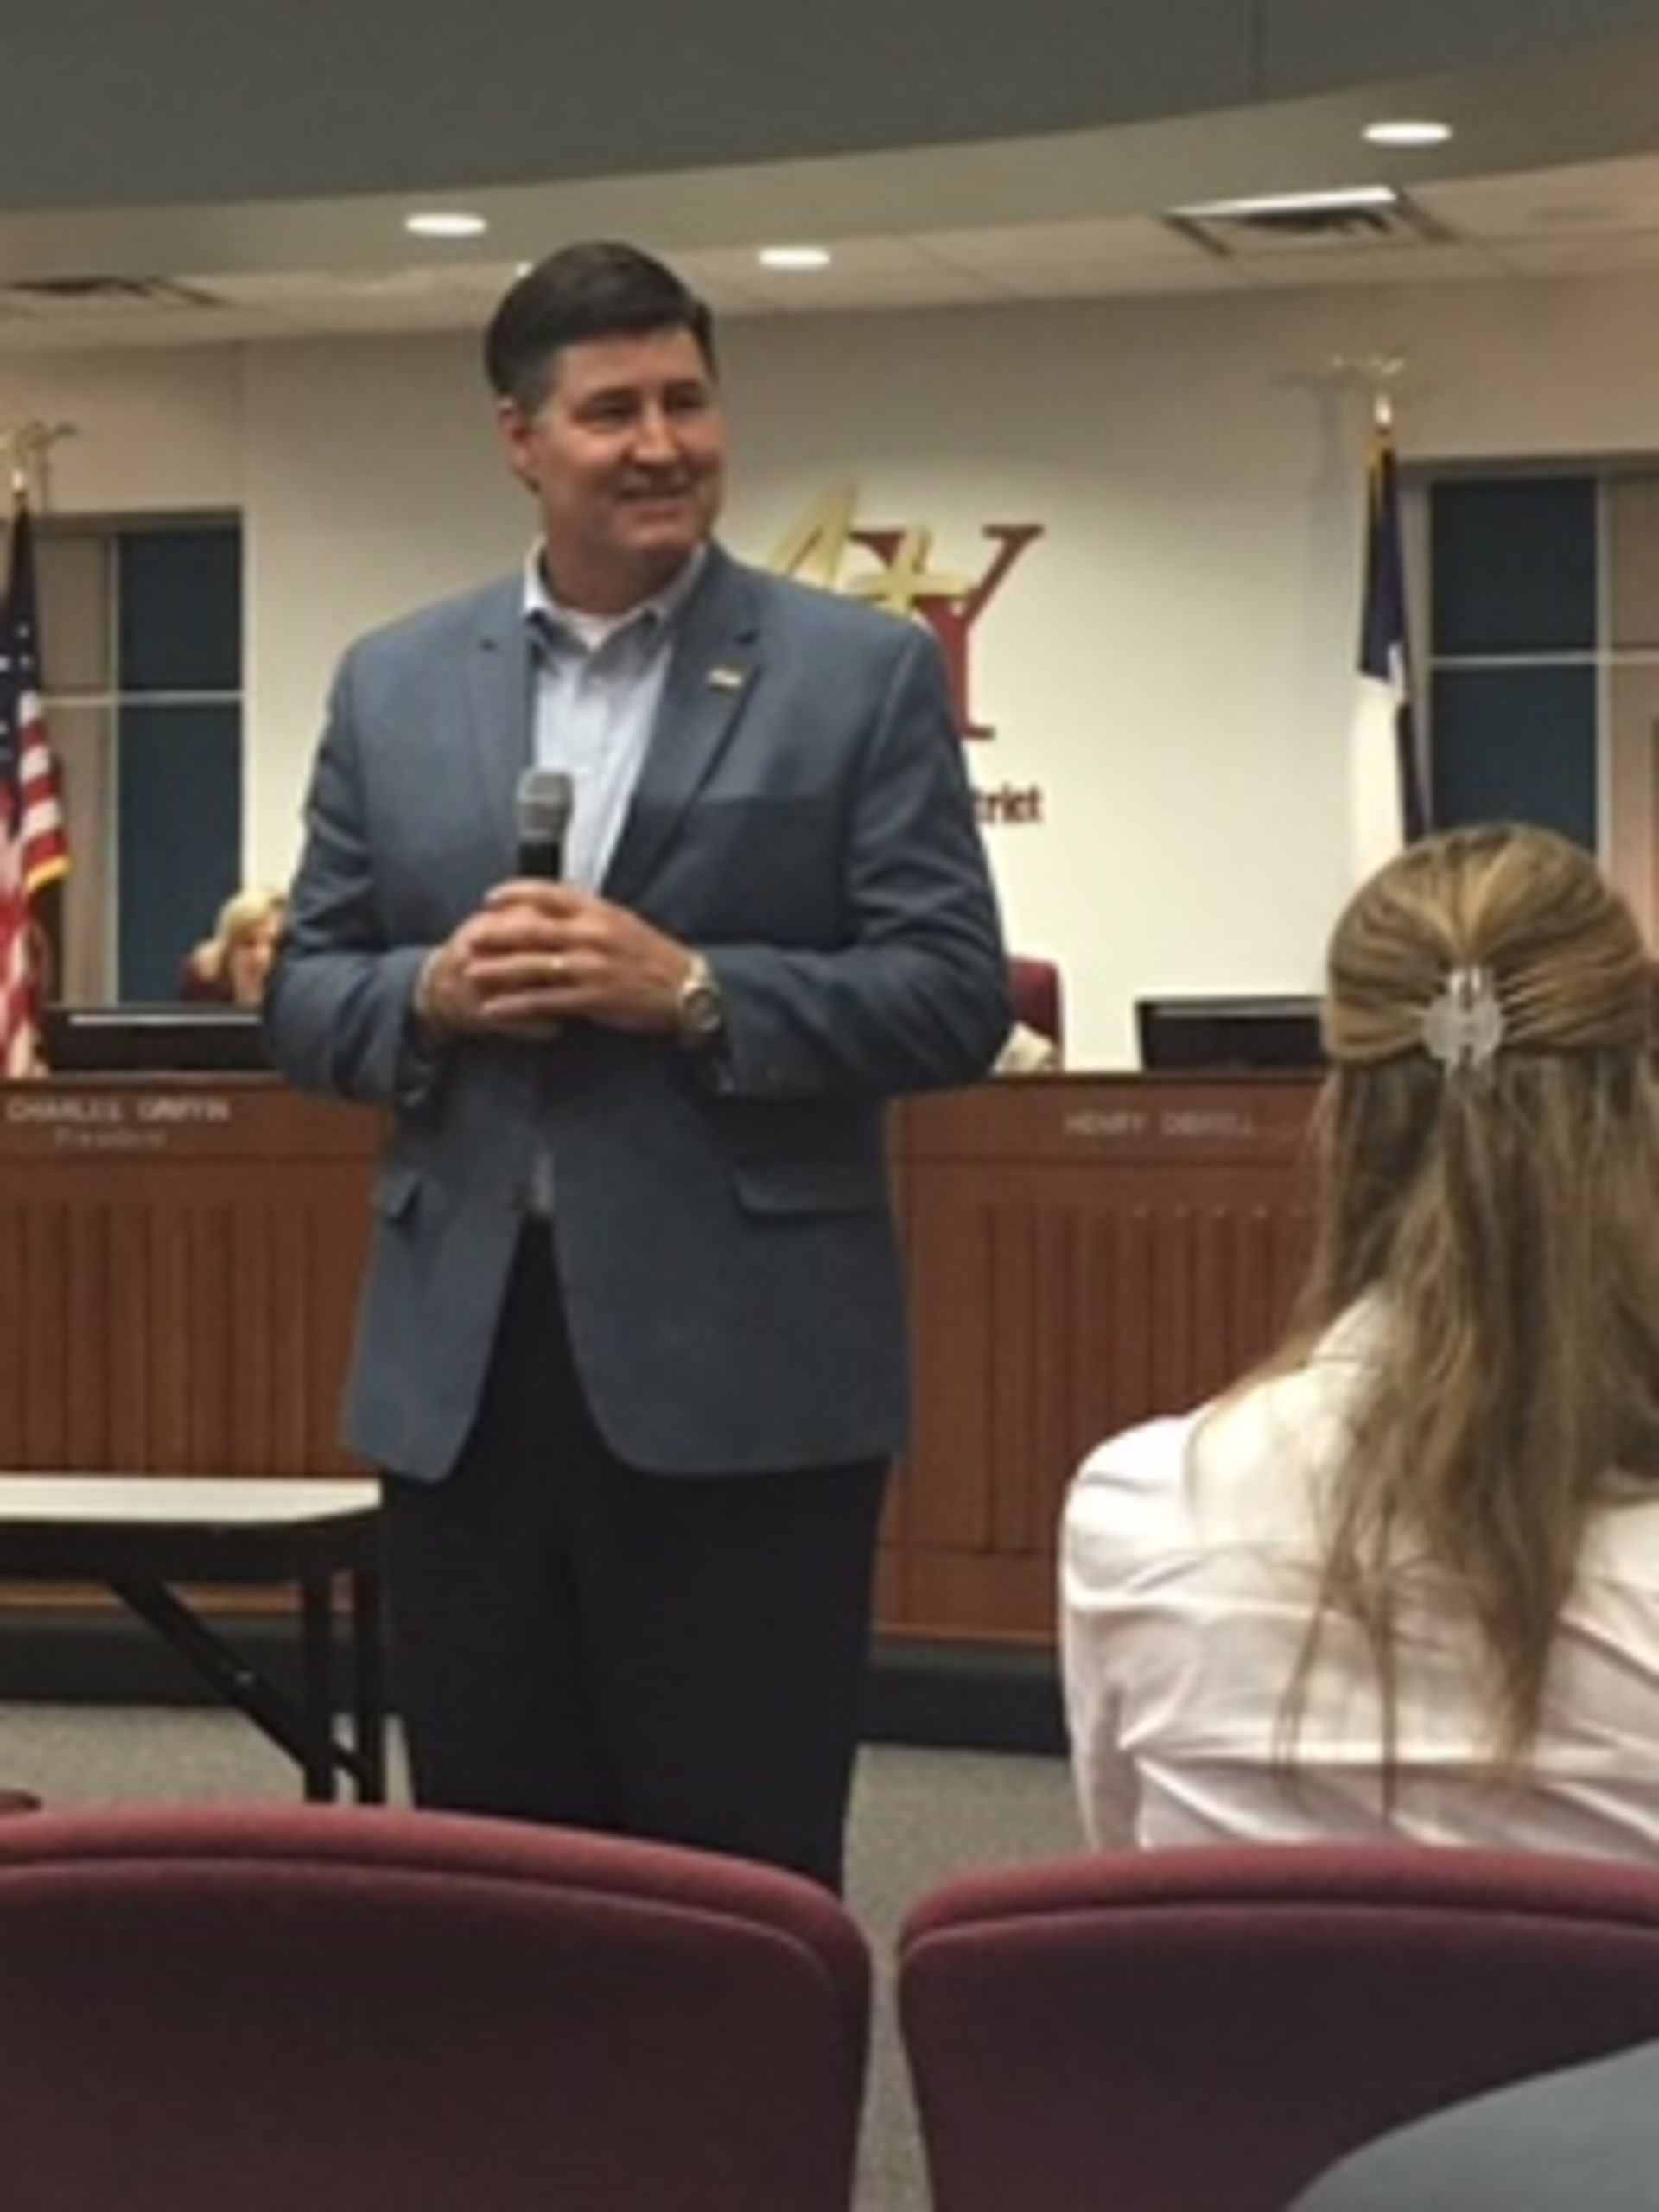 Katy ISD Votes to Approve 1983 Taylor High School Graduate and Allen ISD Superintendent Dr. Lance Hindt as the Final Candidate for the Katy ISD Superintendent Position